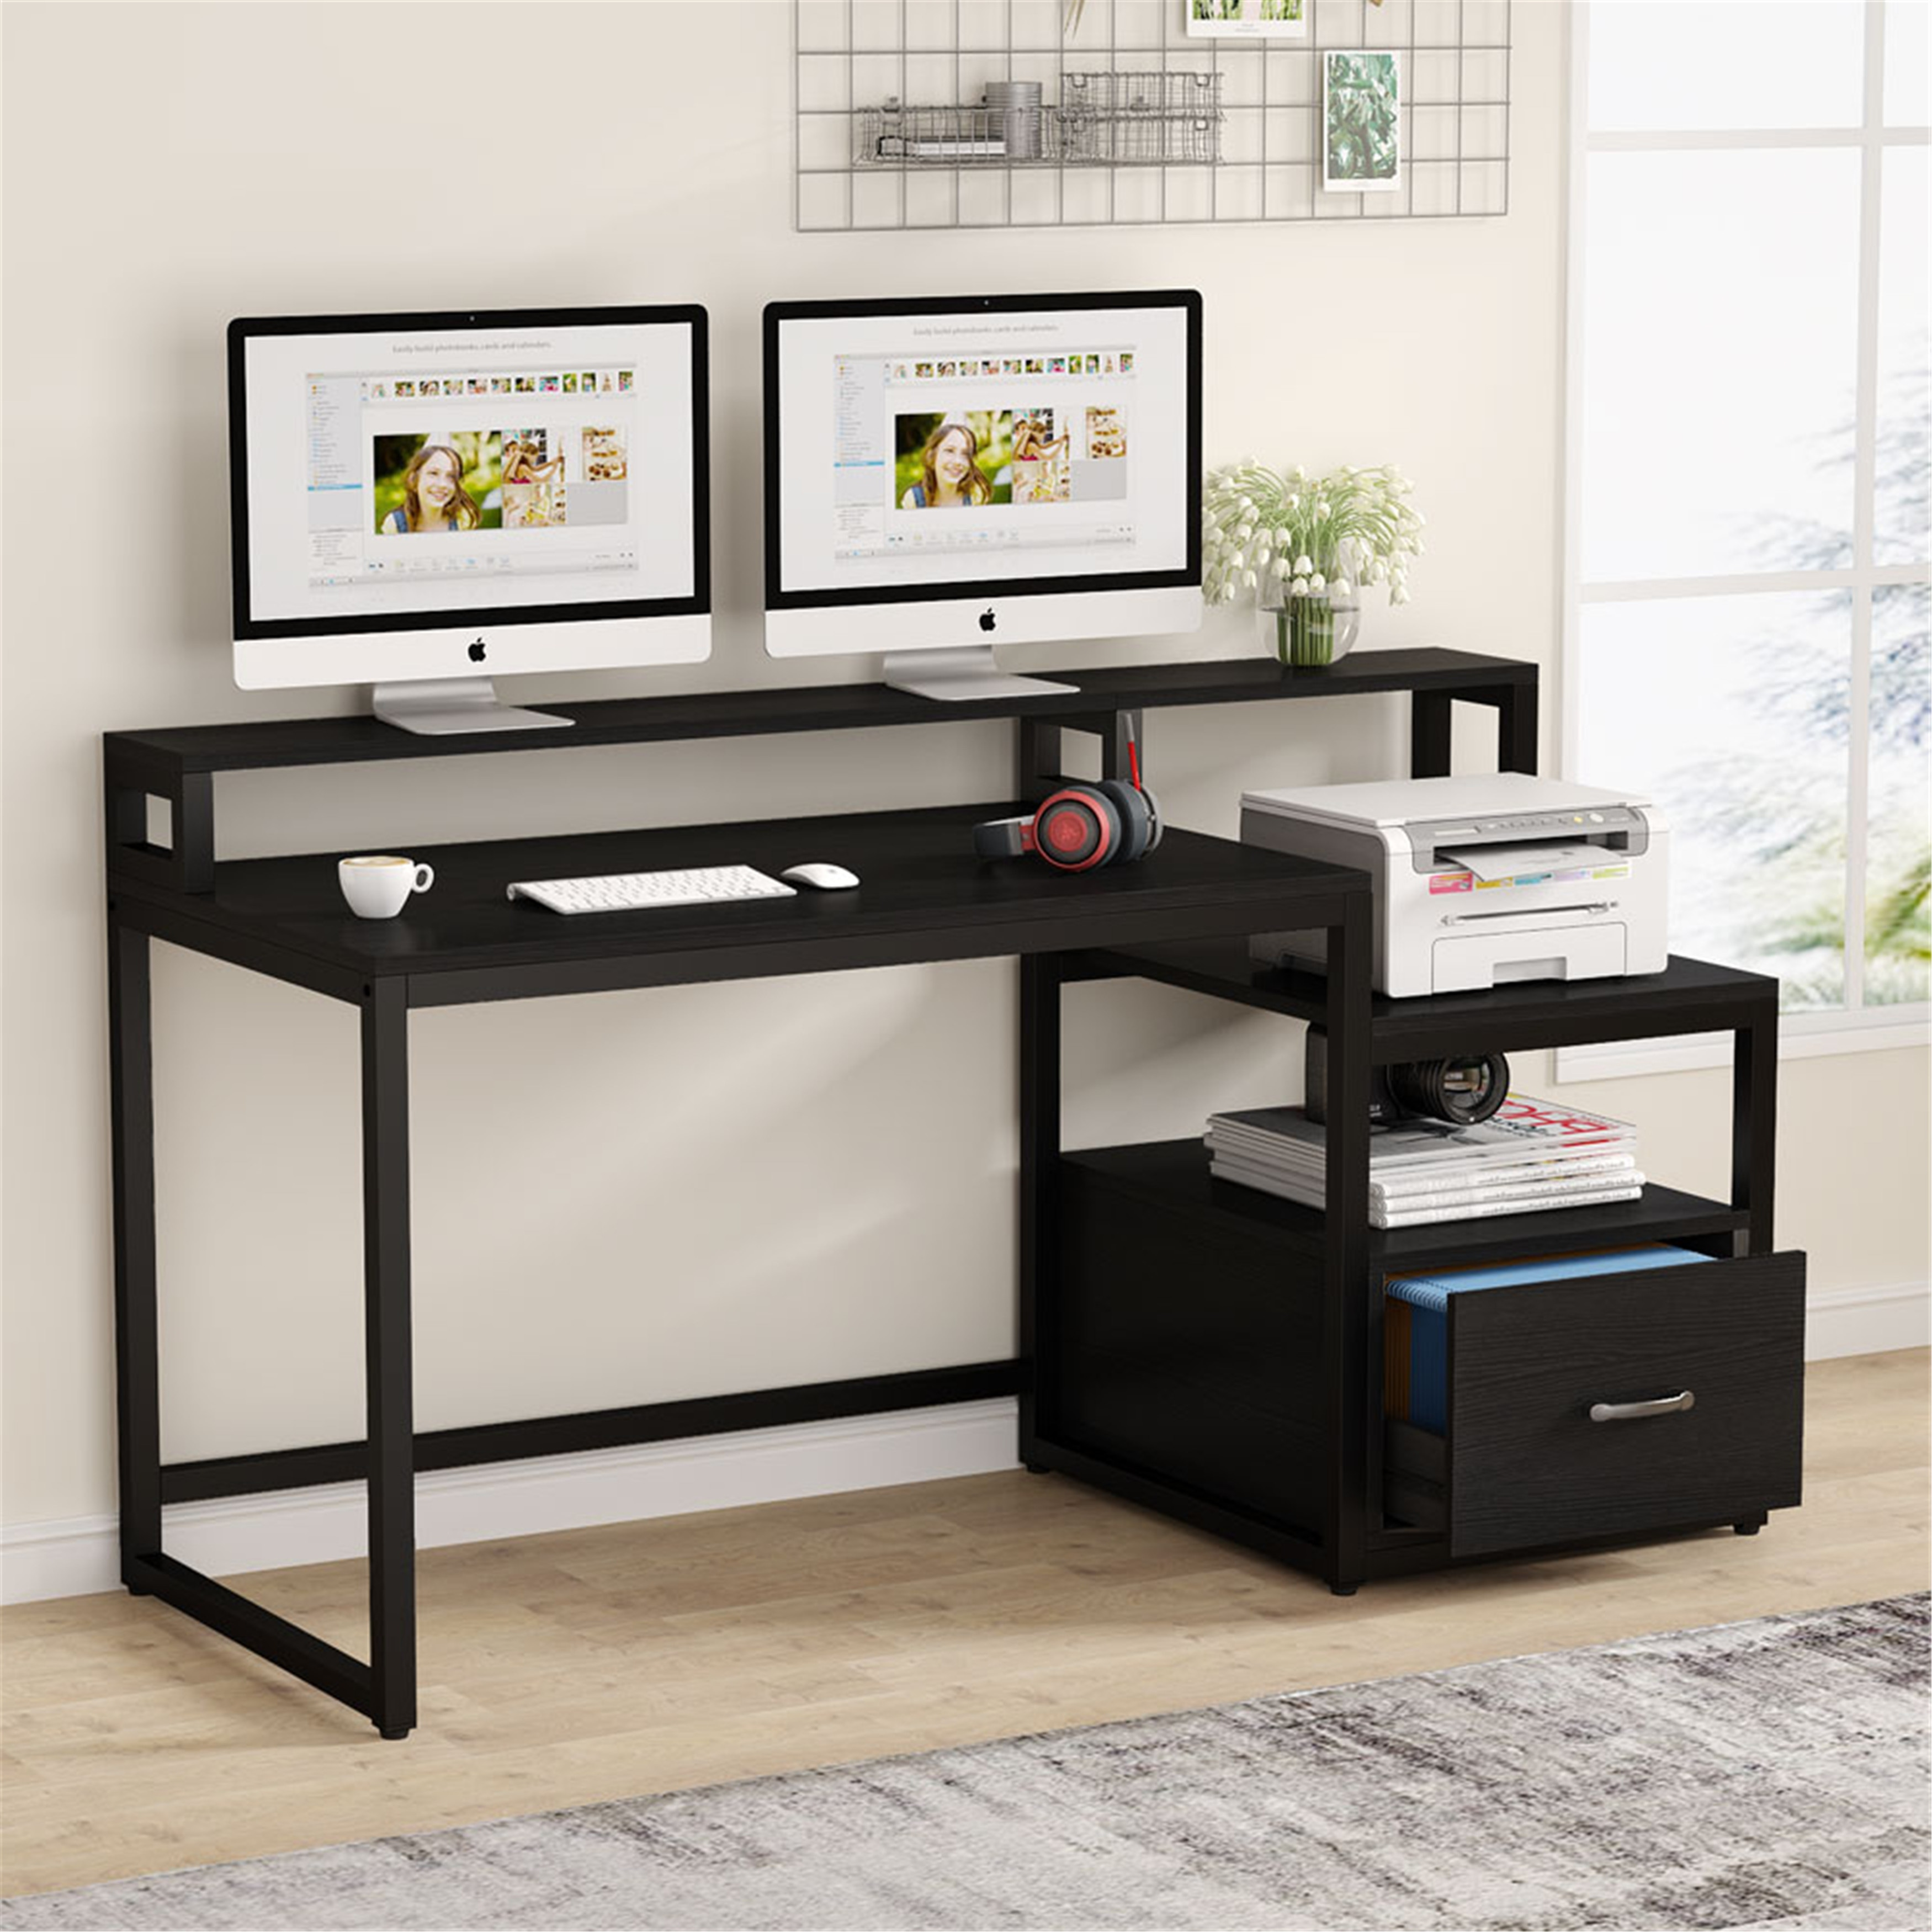 33 Inches Computer Desk with File Drawer and Storage Shelves